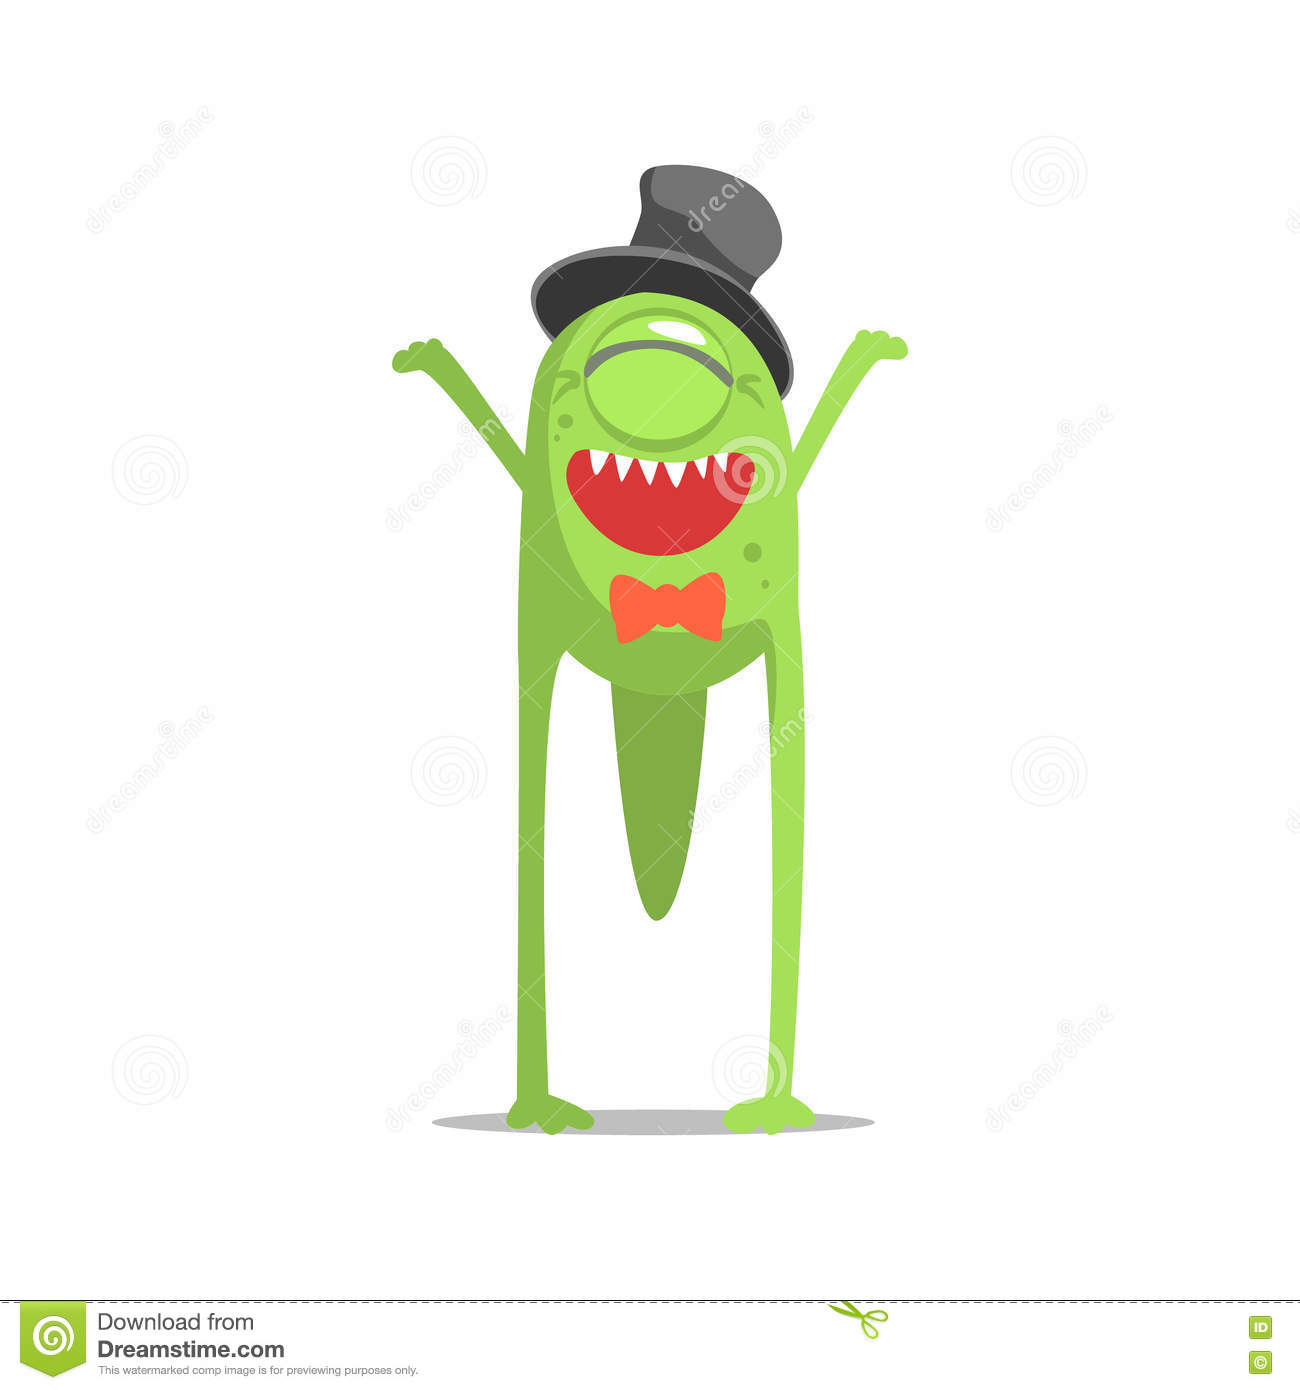 Happy Green One-Eyed Monster In Top Hat And Bow Tie Partying Hard As A Guest At Glamorous Posh Party Vector Illustration